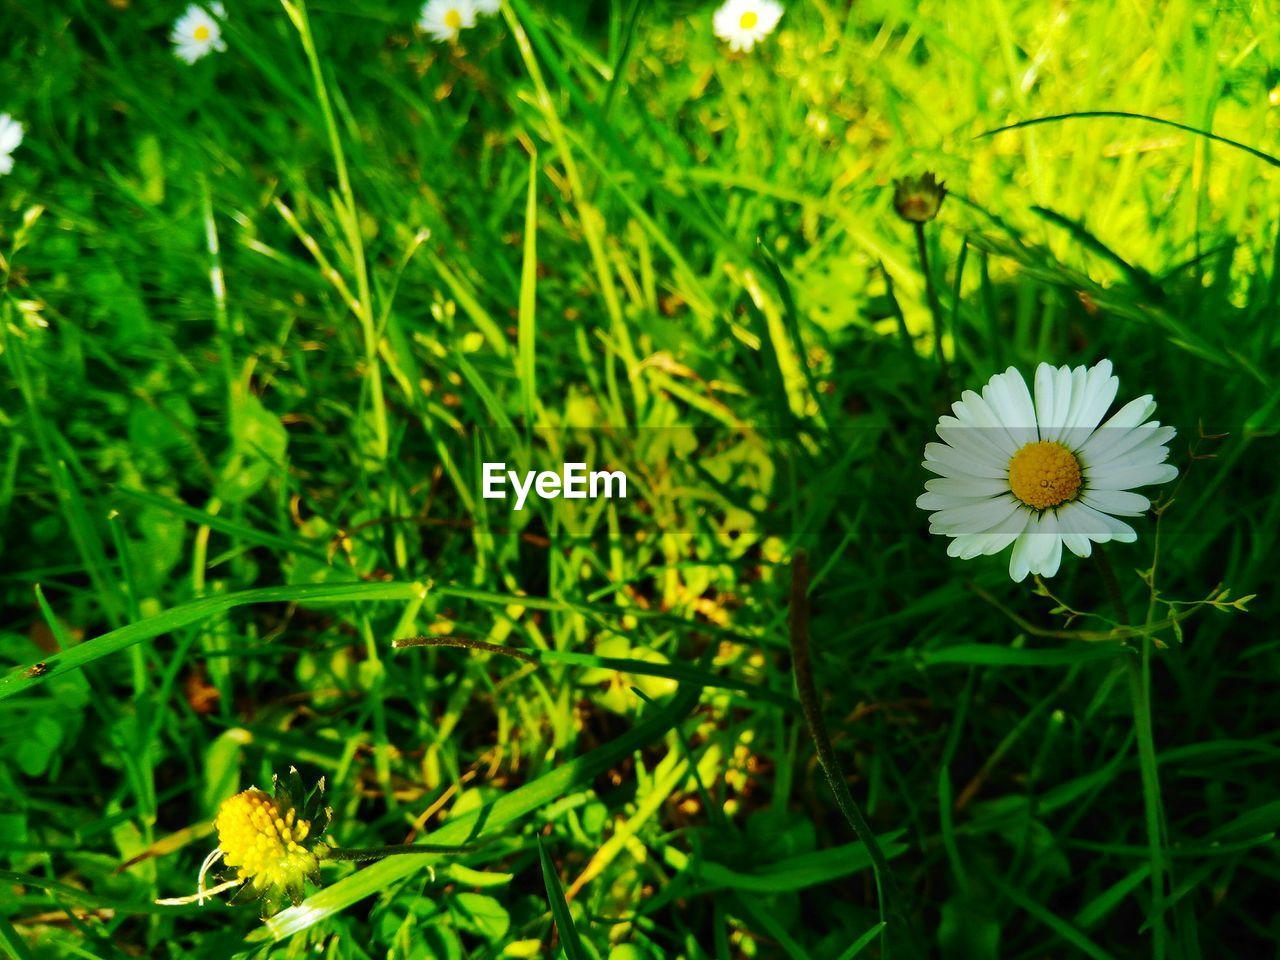 plant, flowering plant, flower, freshness, growth, beauty in nature, fragility, green color, vulnerability, petal, flower head, inflorescence, close-up, nature, field, no people, land, day, white color, selective focus, outdoors, pollen, blade of grass